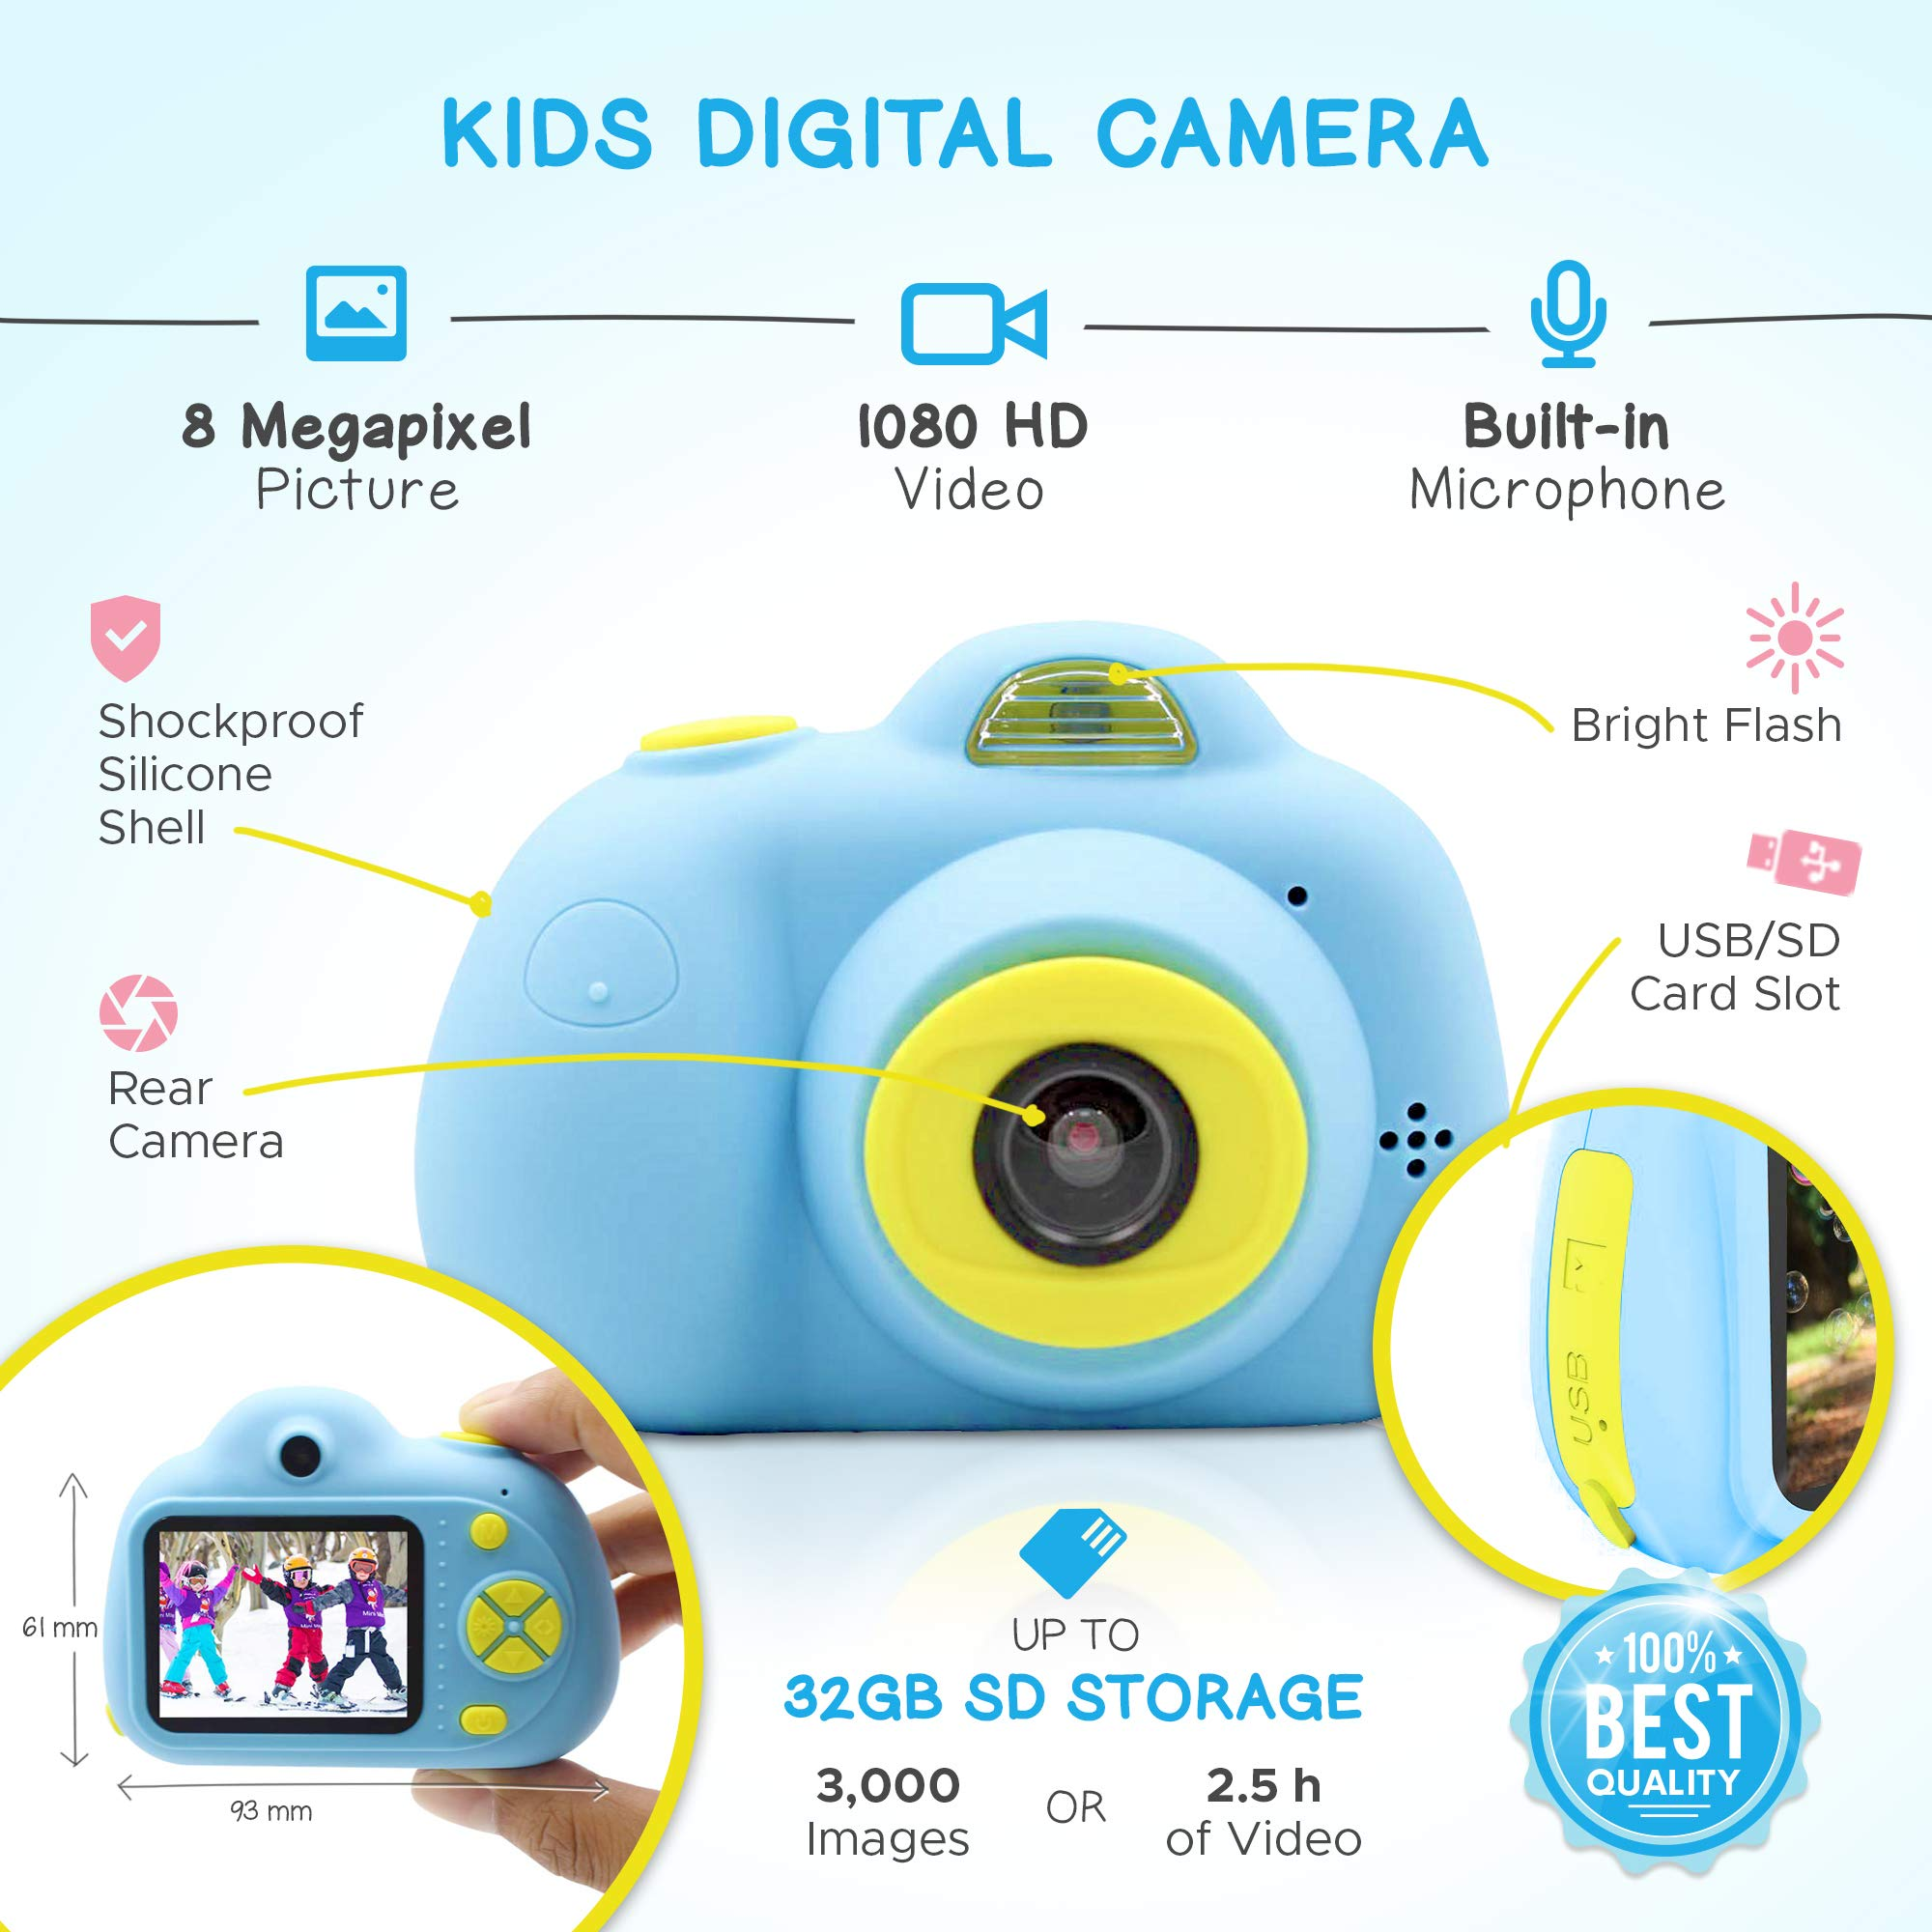 SANVOY Kids Camera - 8MP Photography and 1080 HD Video for Children - 2.0'' LCD Screen, 4X Digital Zoom with Selfie Function in Blue or Pink - Small Camera for Easy Transport by SANVOY (Image #3)